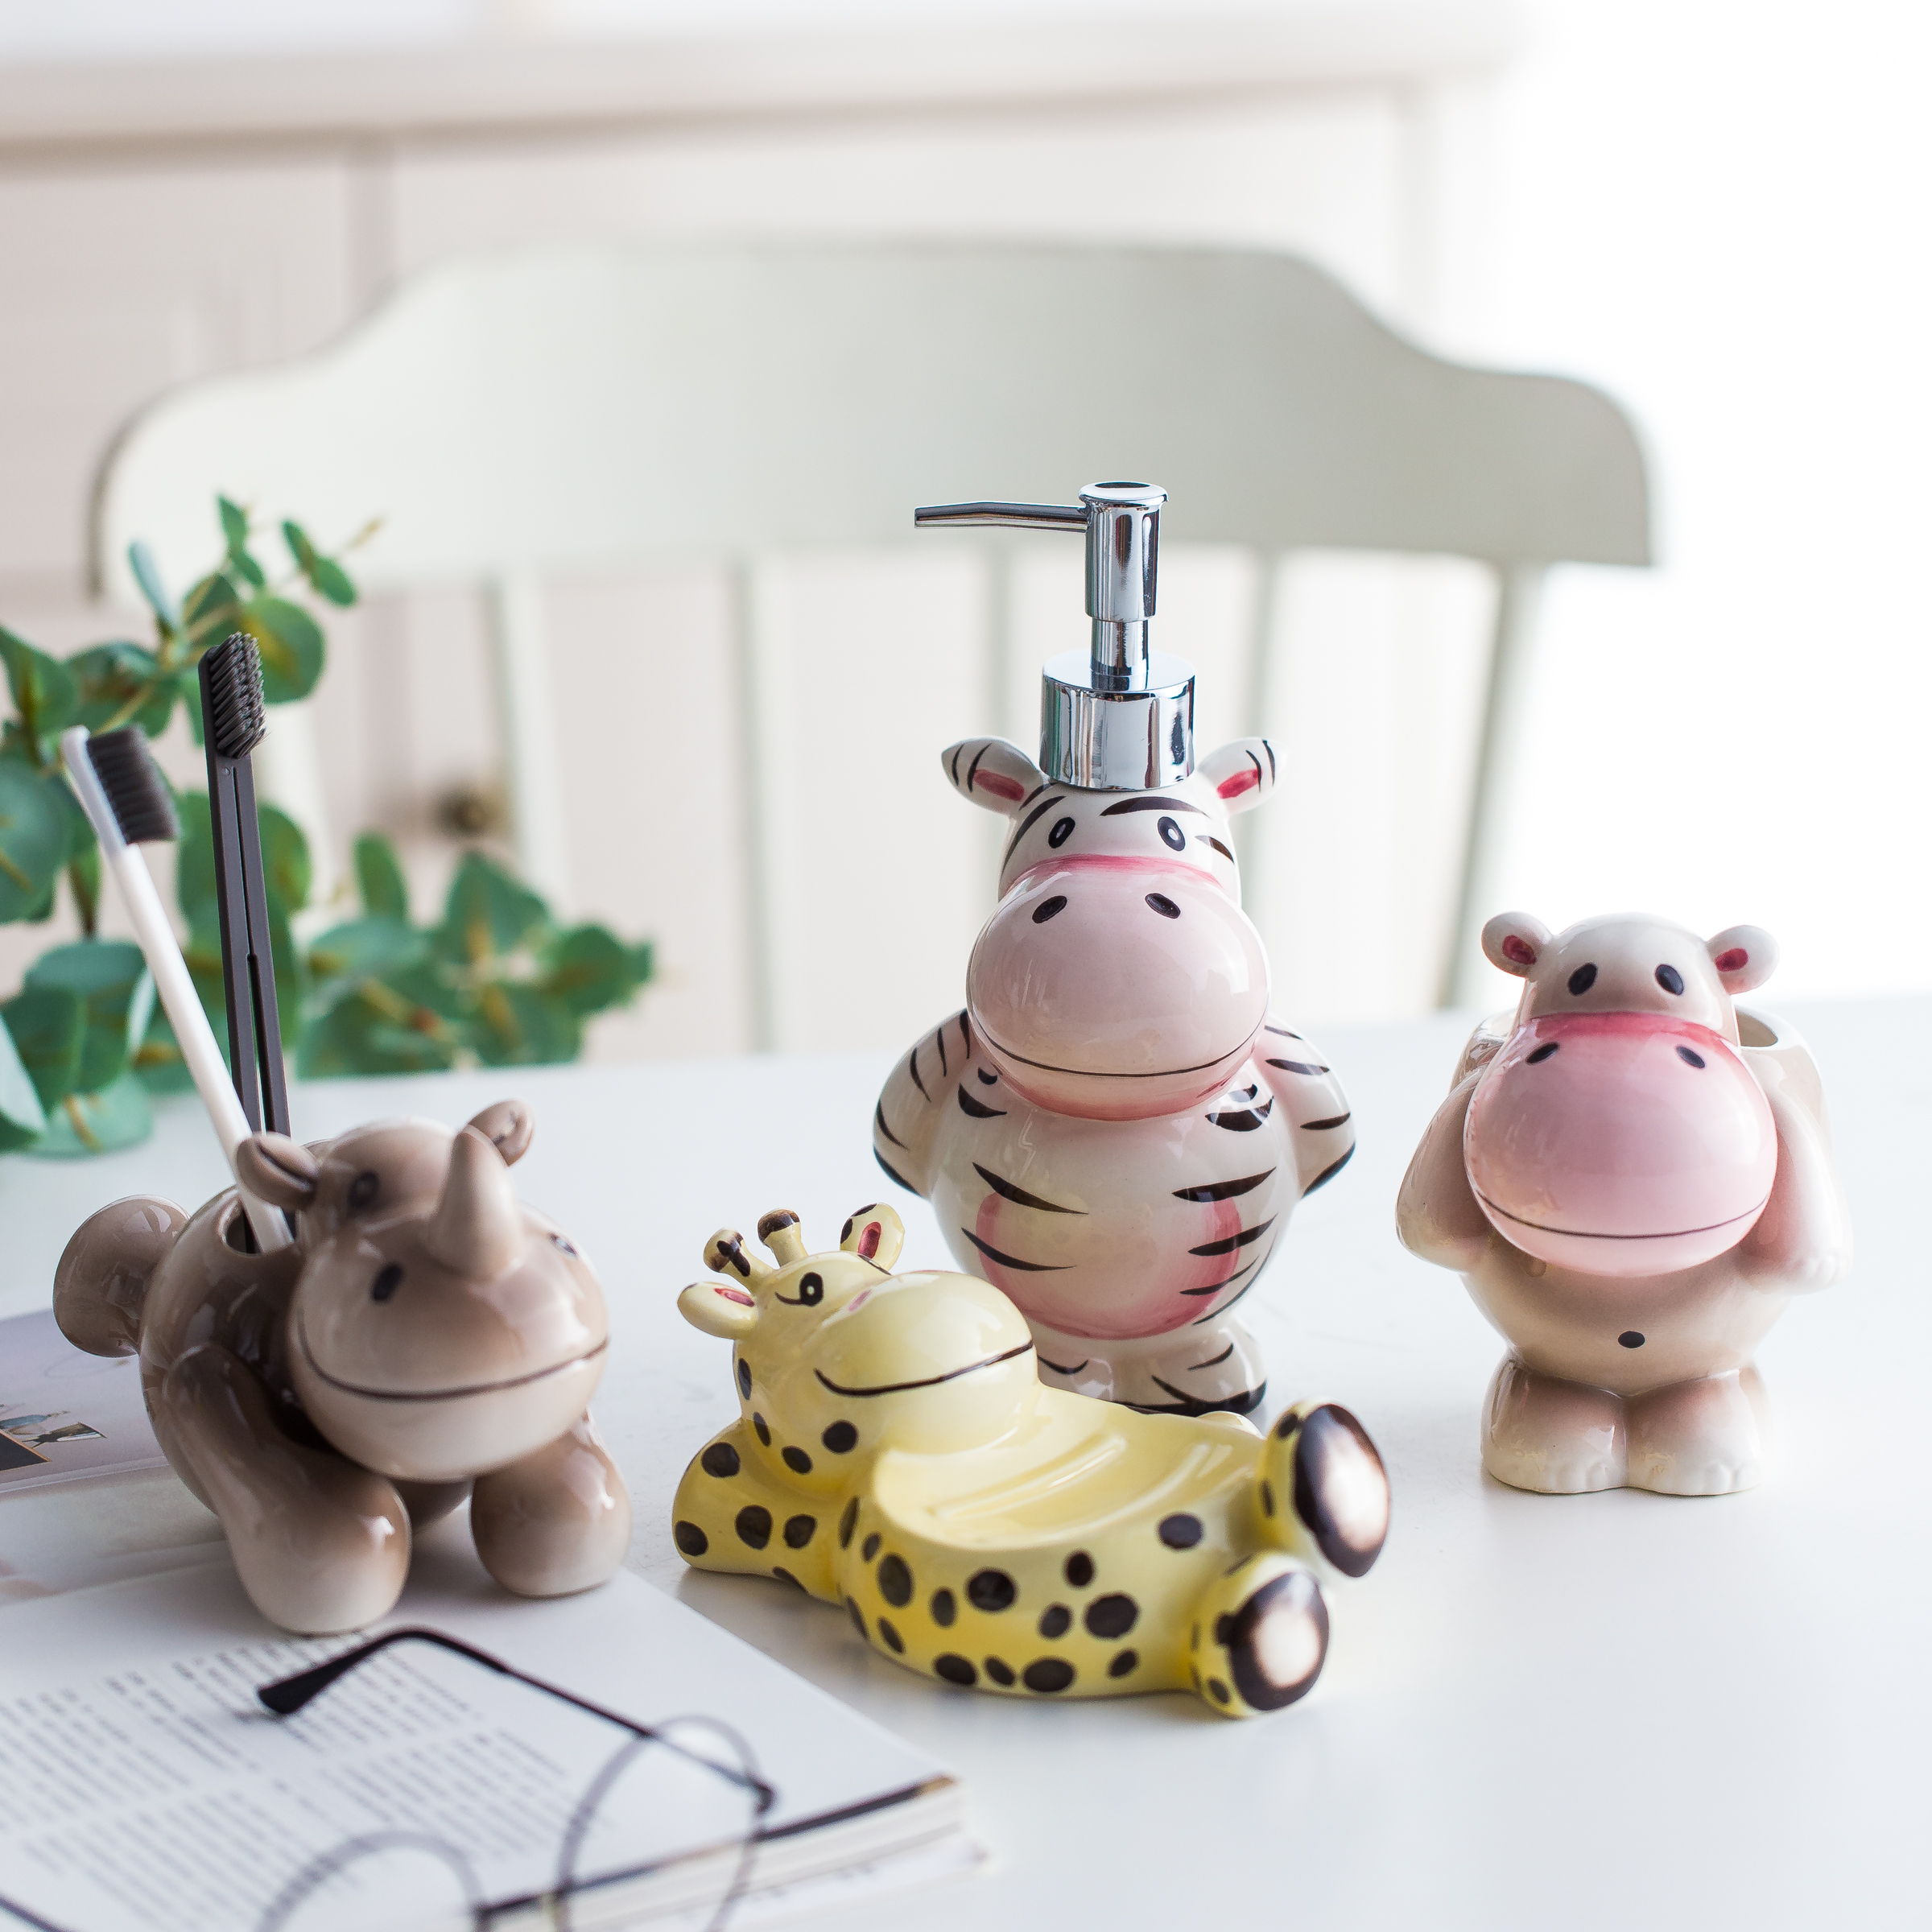 Cartoon Ceramic Bathroom Wash Set 4 Piece Set Of Cute